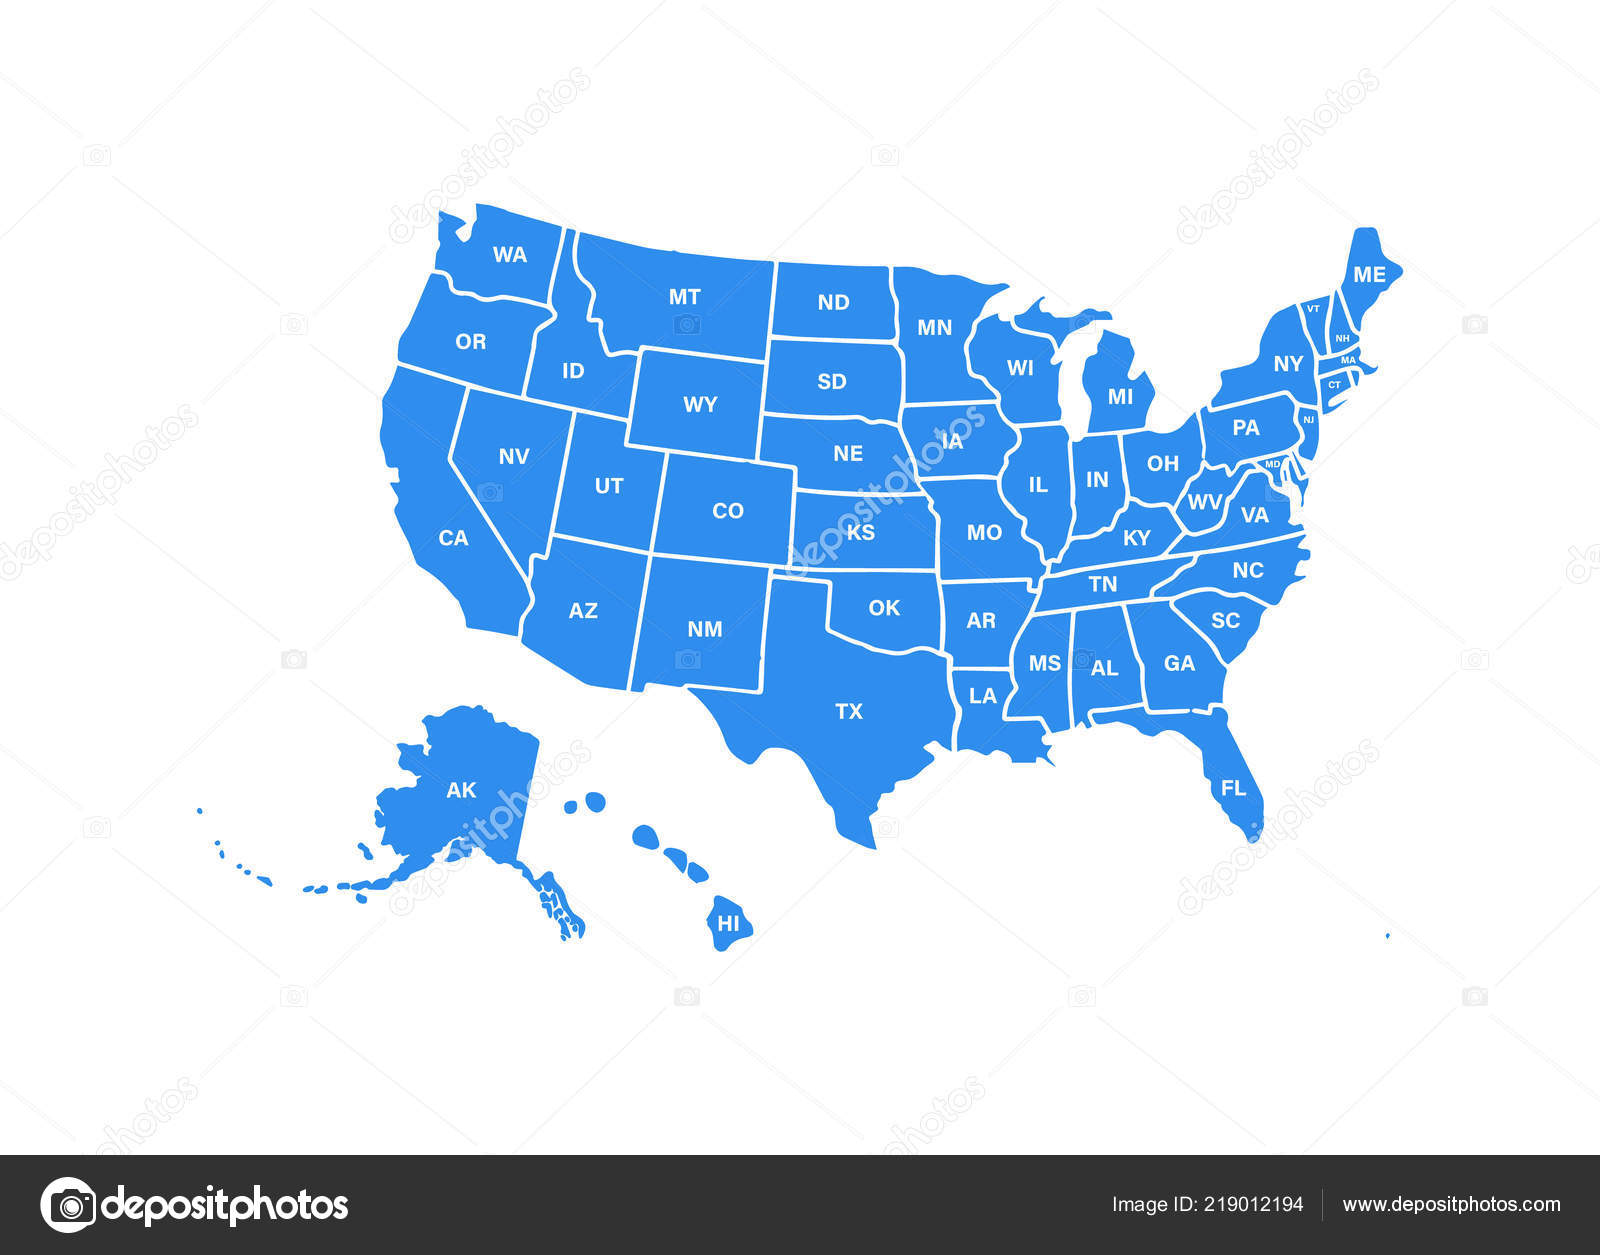 Blank similar USA map isolated on white background. United ... on usa map with major cities, project management status report template, usa template 8 x 11, dashboard powerpoint template, usa flag template, strategy map editable powerpoint template, usa map outline template, usa map blank template, ppt map template, earth map template, usa powerpoint template, usa map with state lines, interactive map template, united states map template, usa and mexico map with state names, usa map with abbreviations, project status report powerpoint template, texas map template, us map template, usa maps united states,